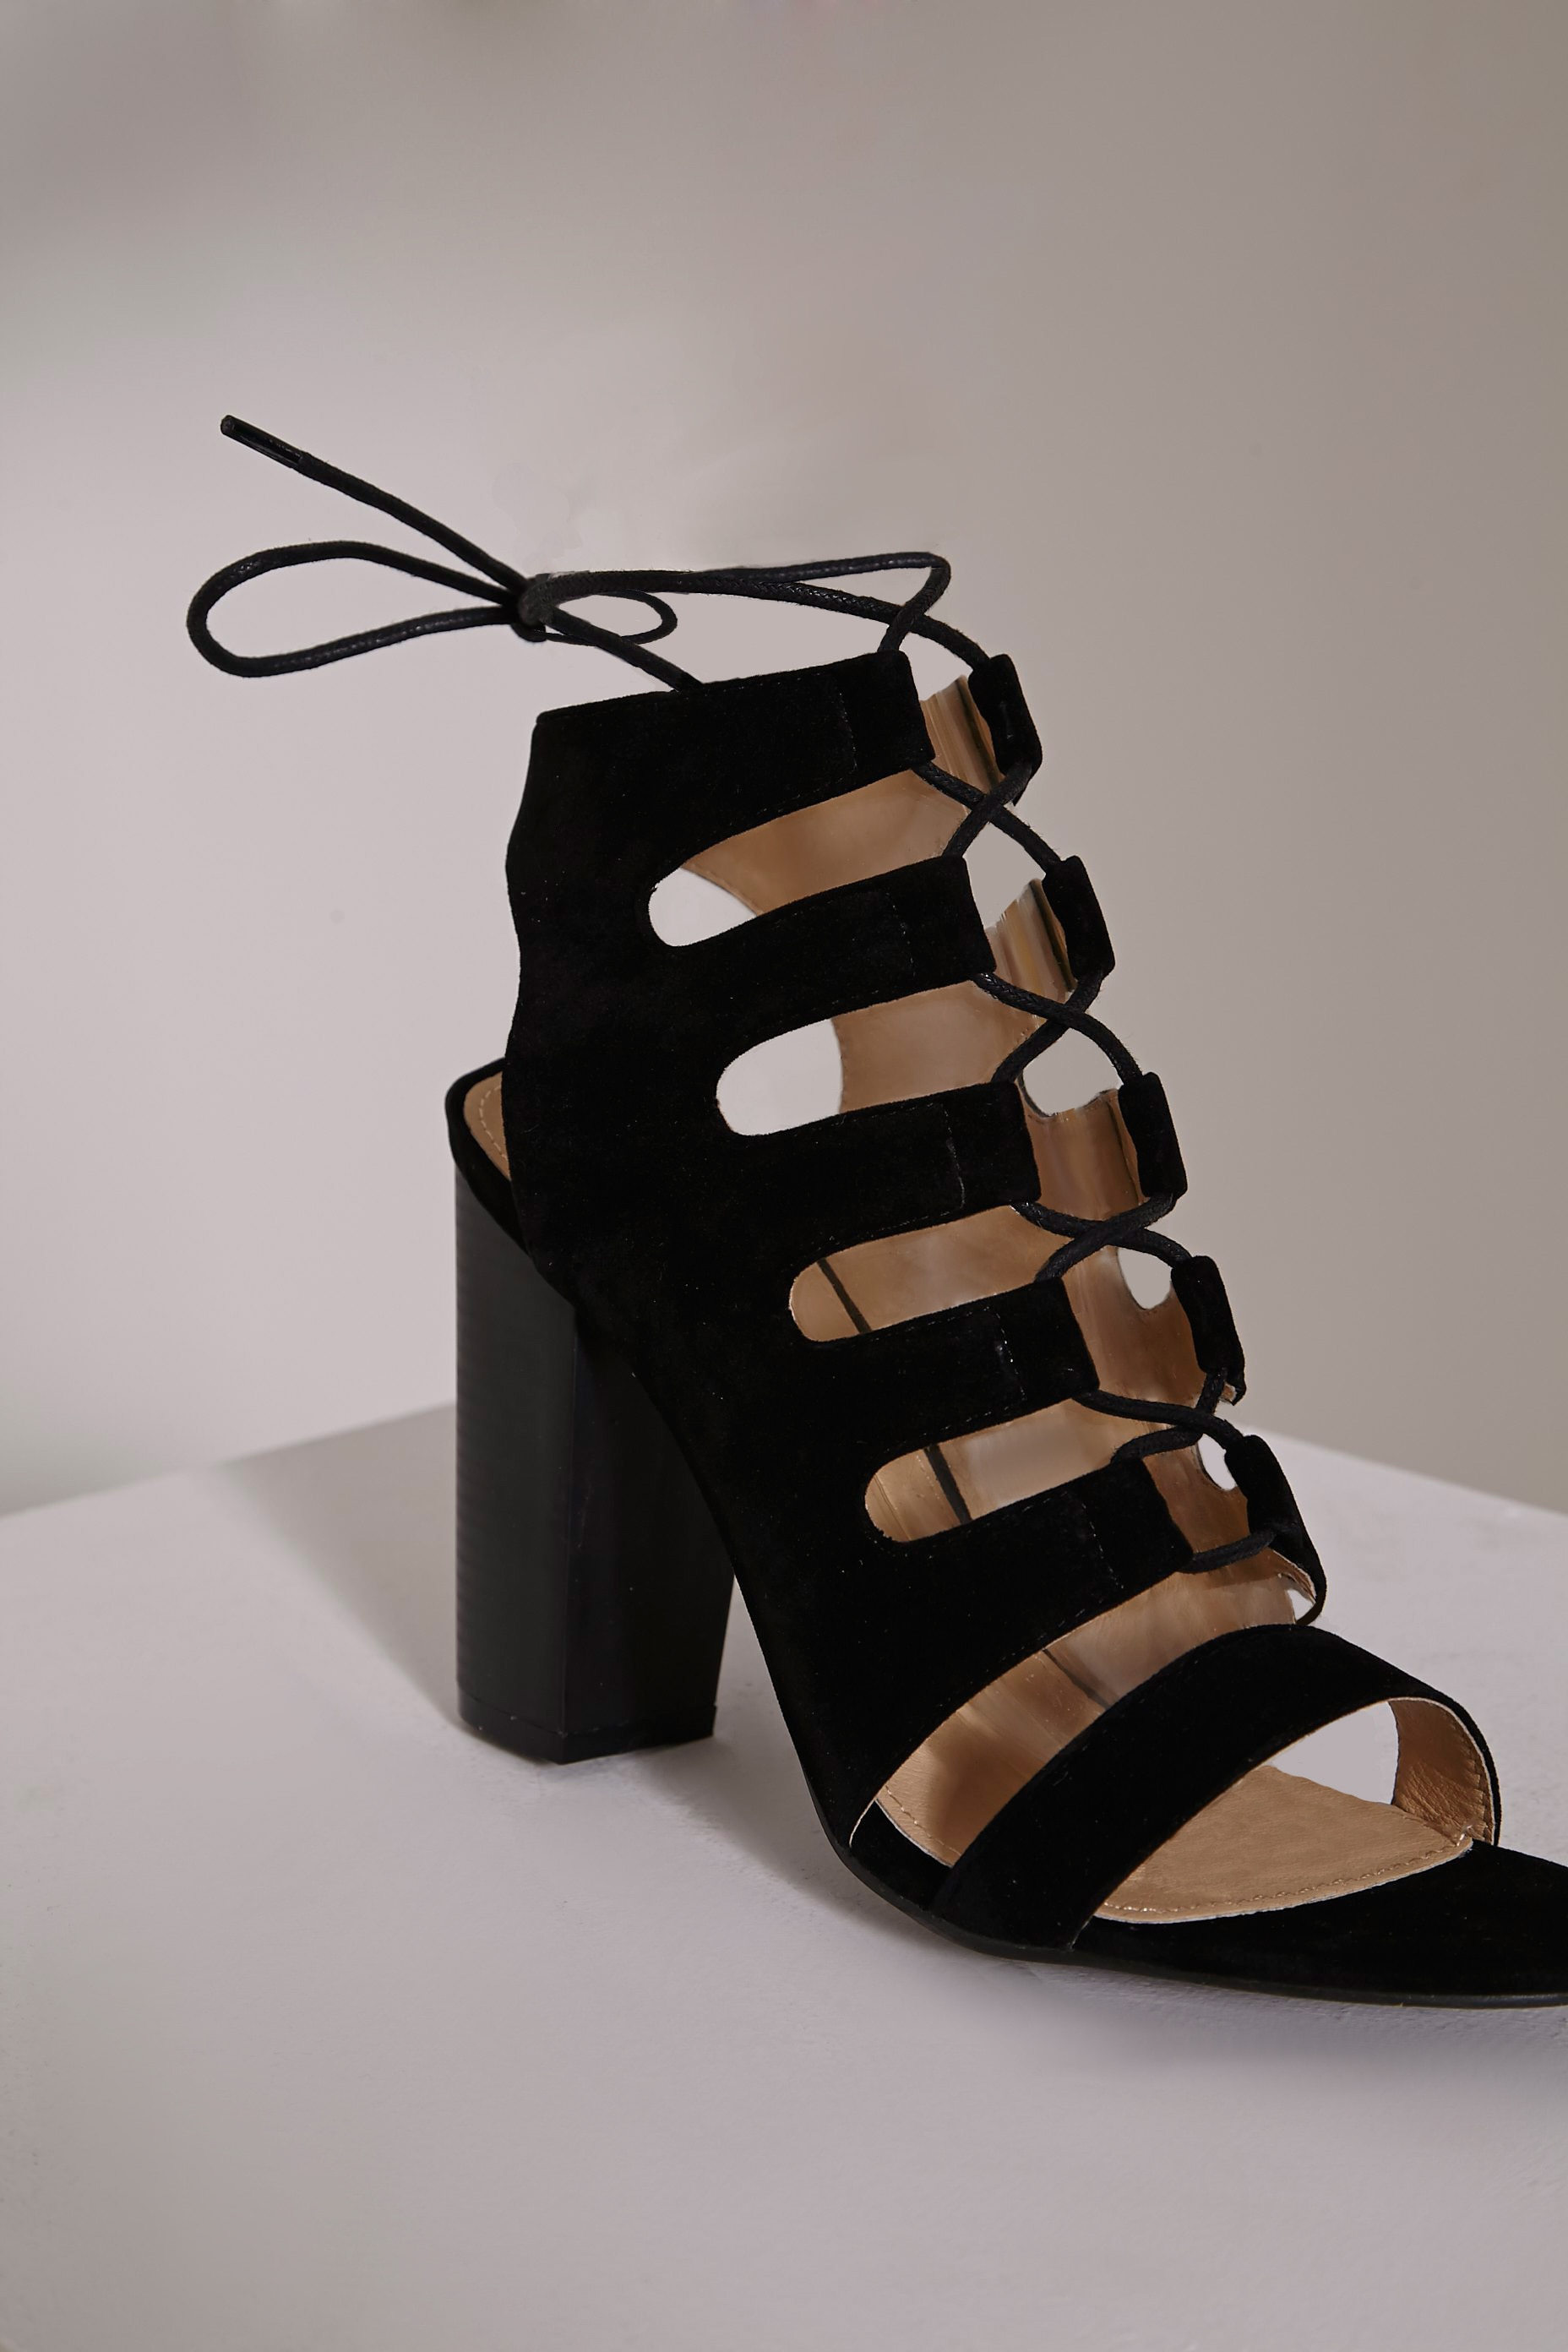 Emerson Black Cut Out Sandals 6